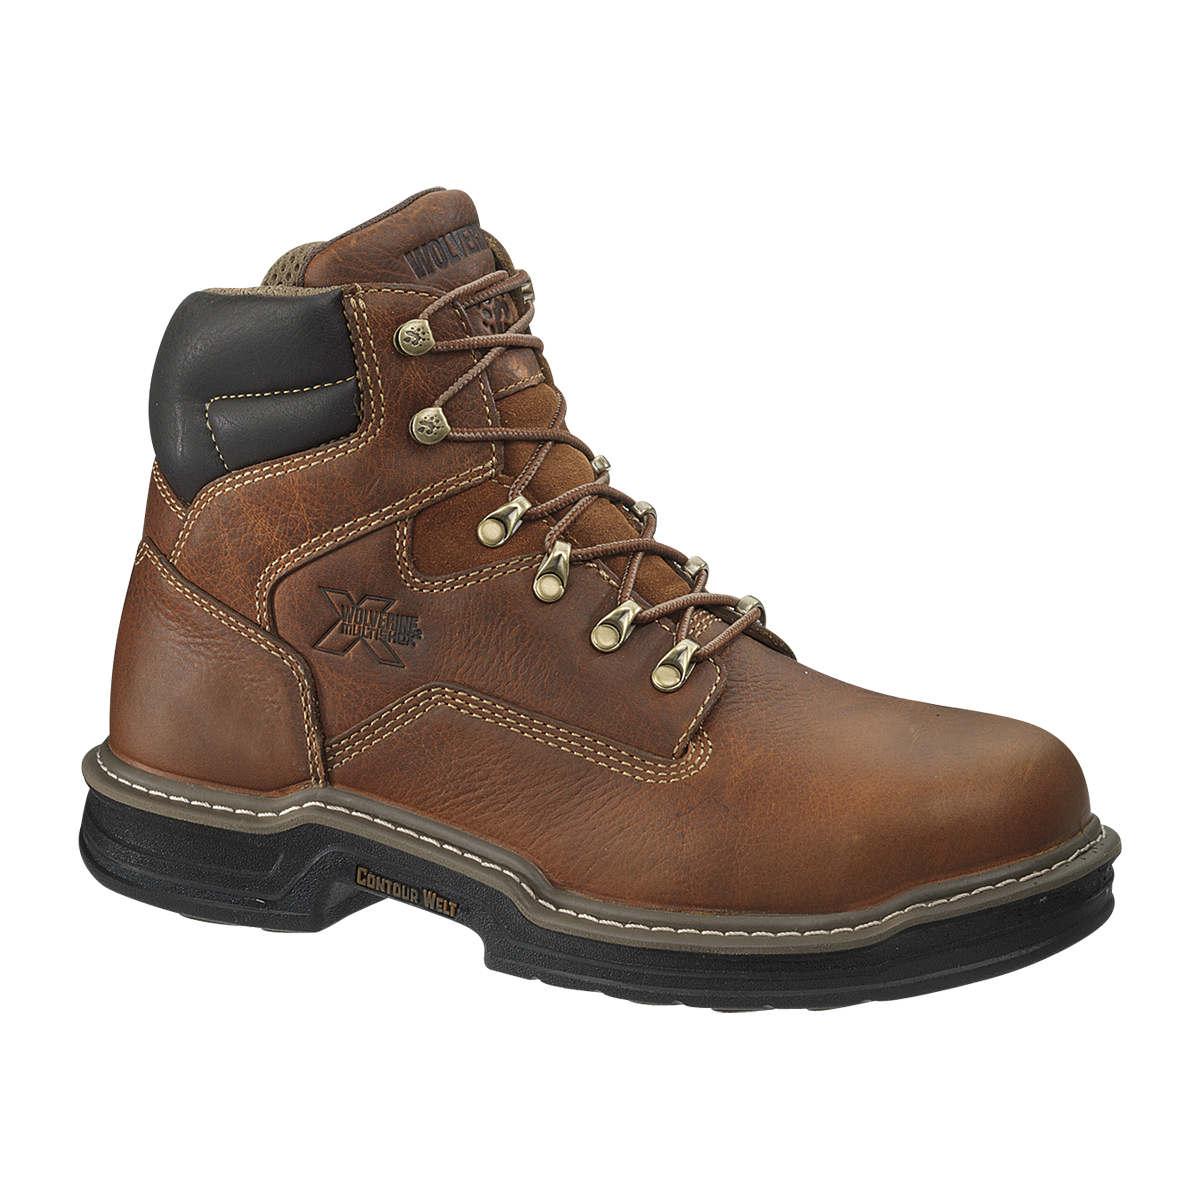 Wolverine Men's 6 Inch Steel Toe Lace Up Boots